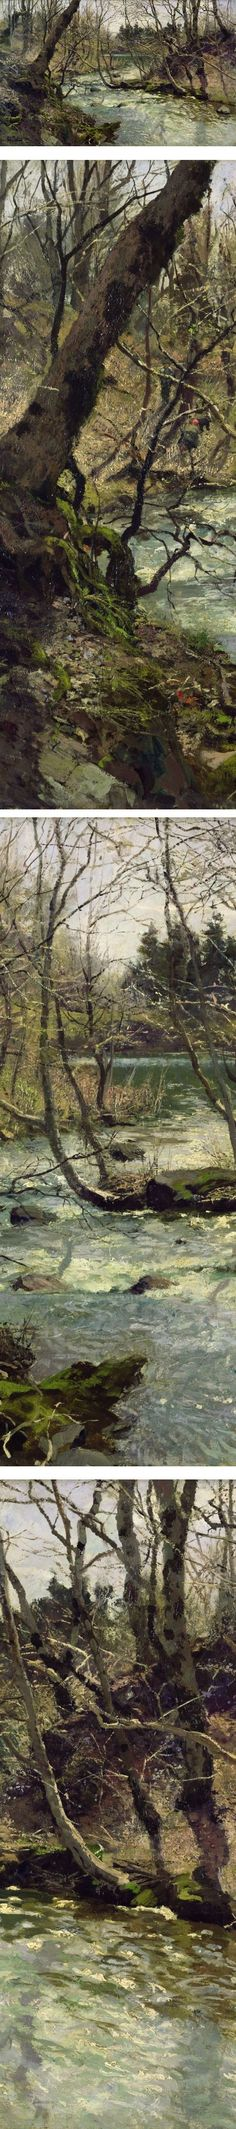 Eye Candy for Today: Thaulow's river